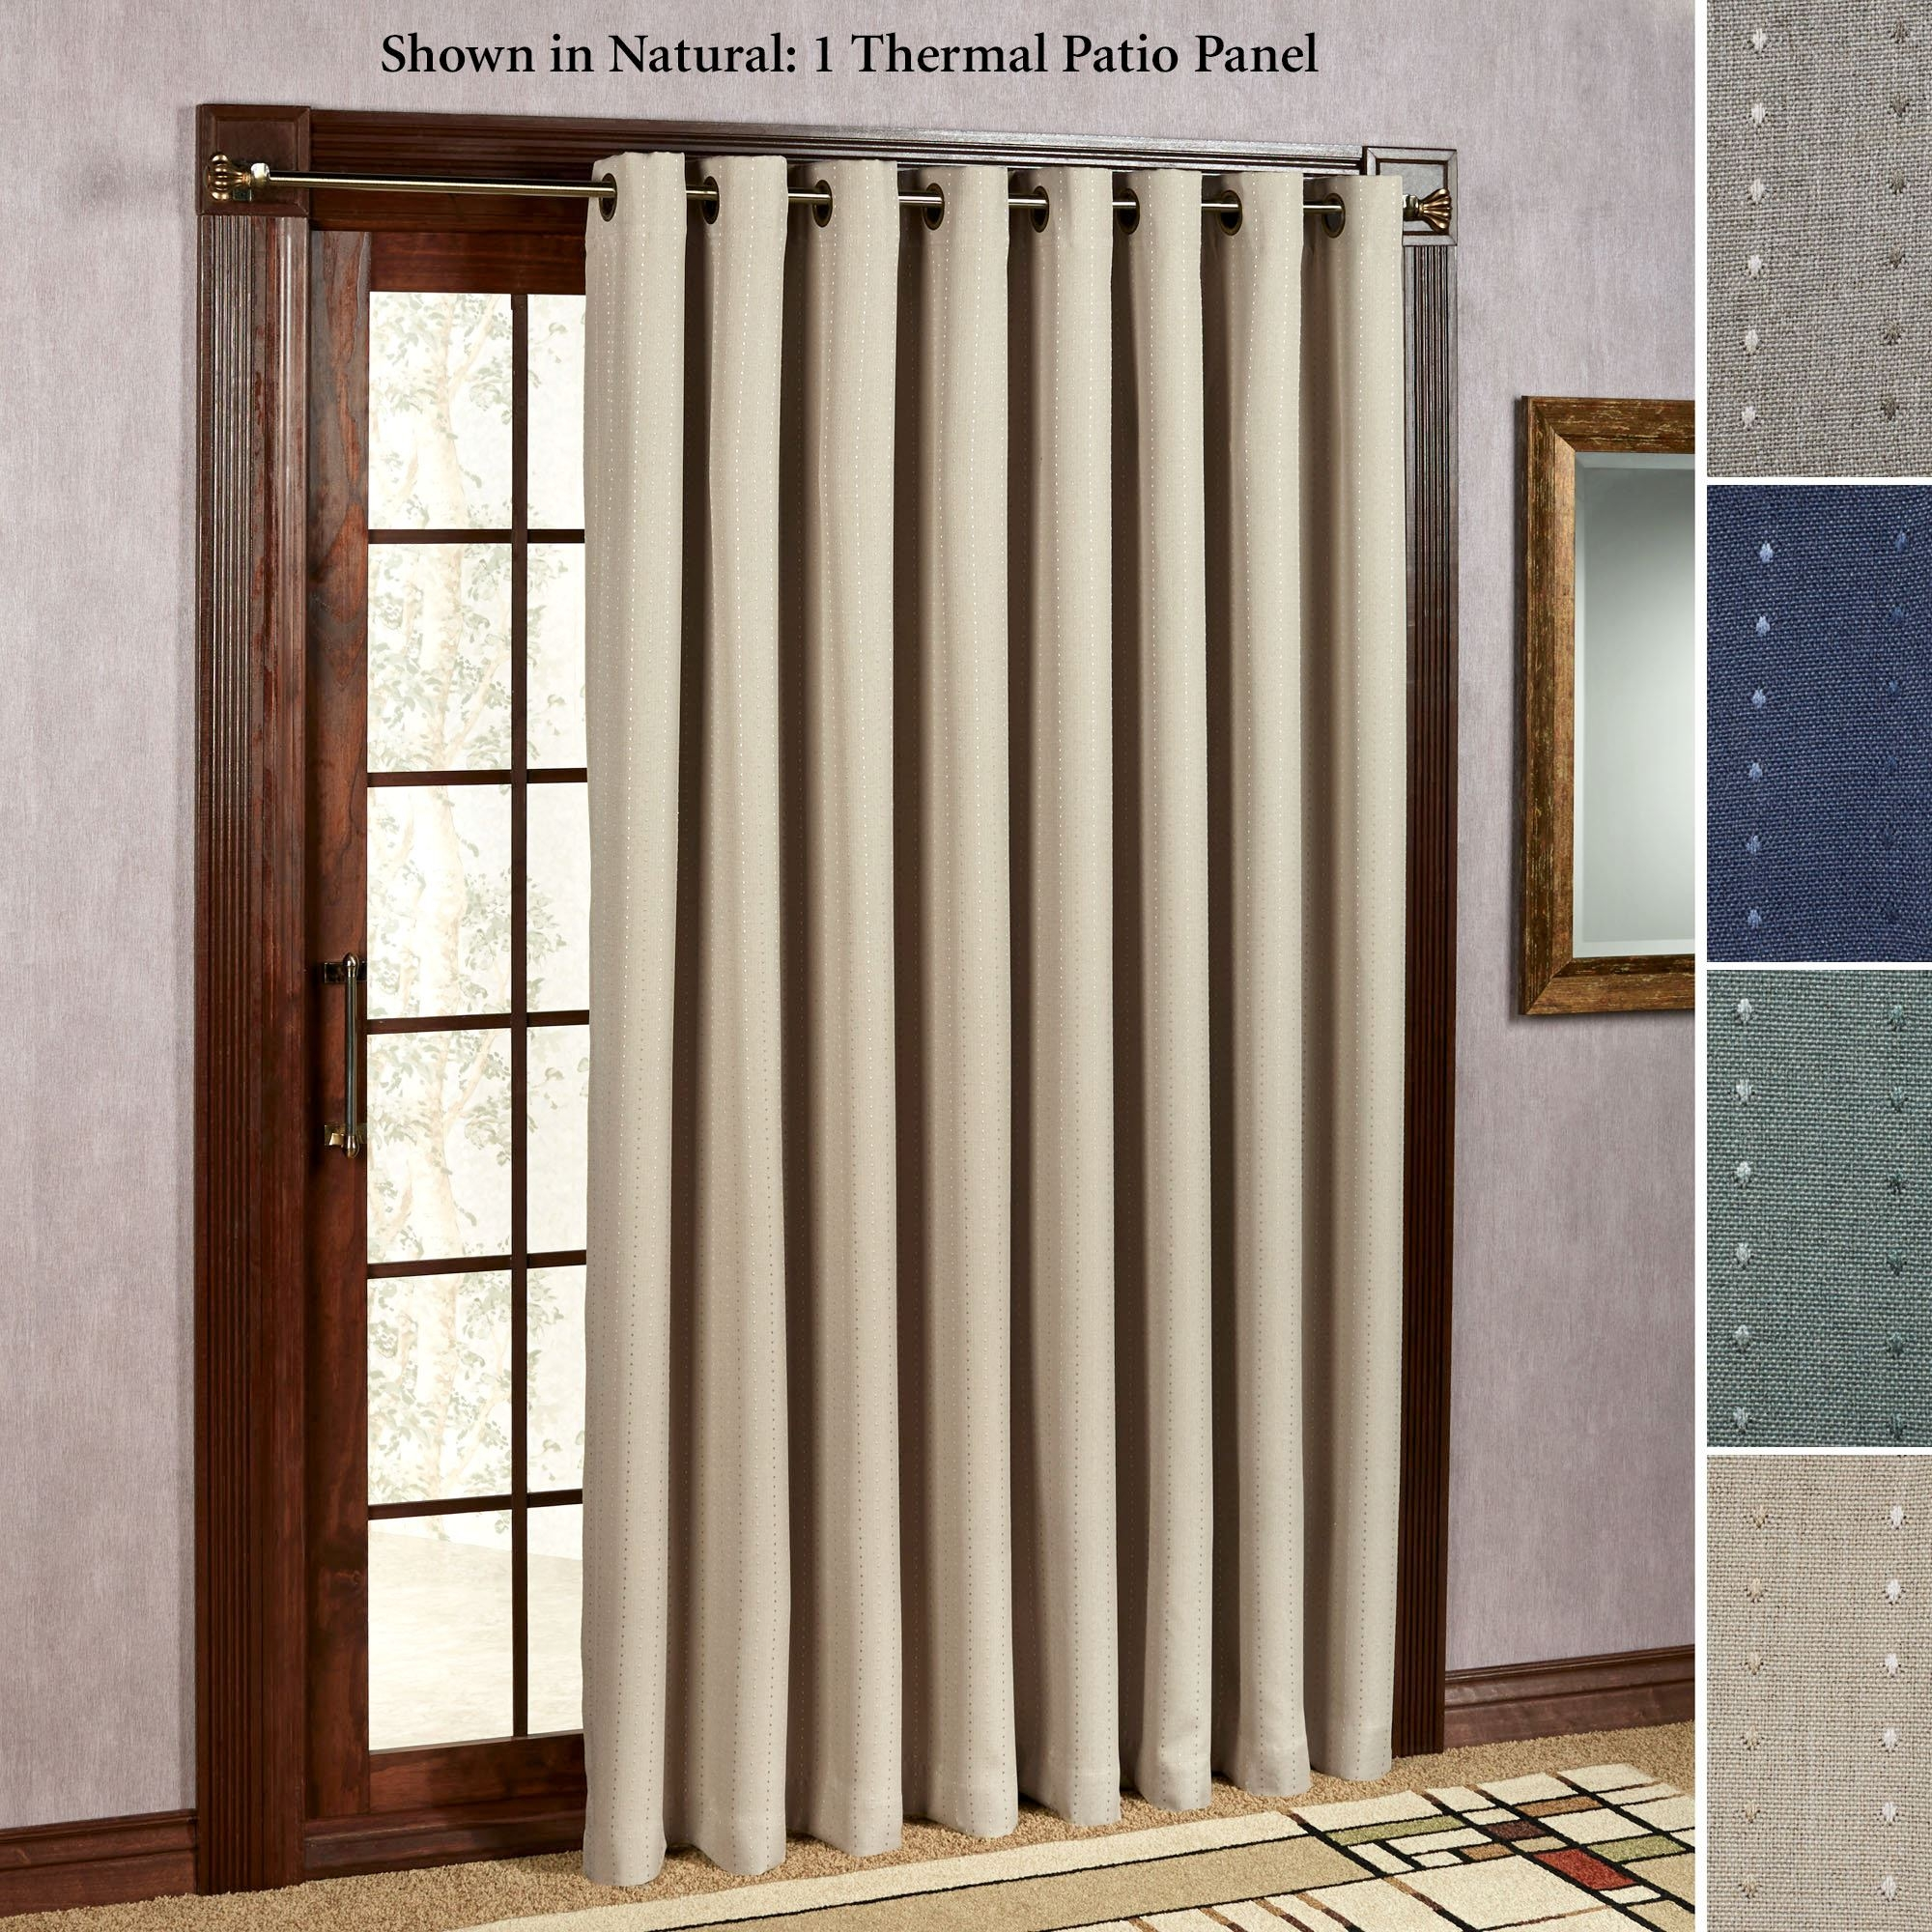 Pictures Of Sliding Glass Doors With Drapespatio door curtain panels touch of class